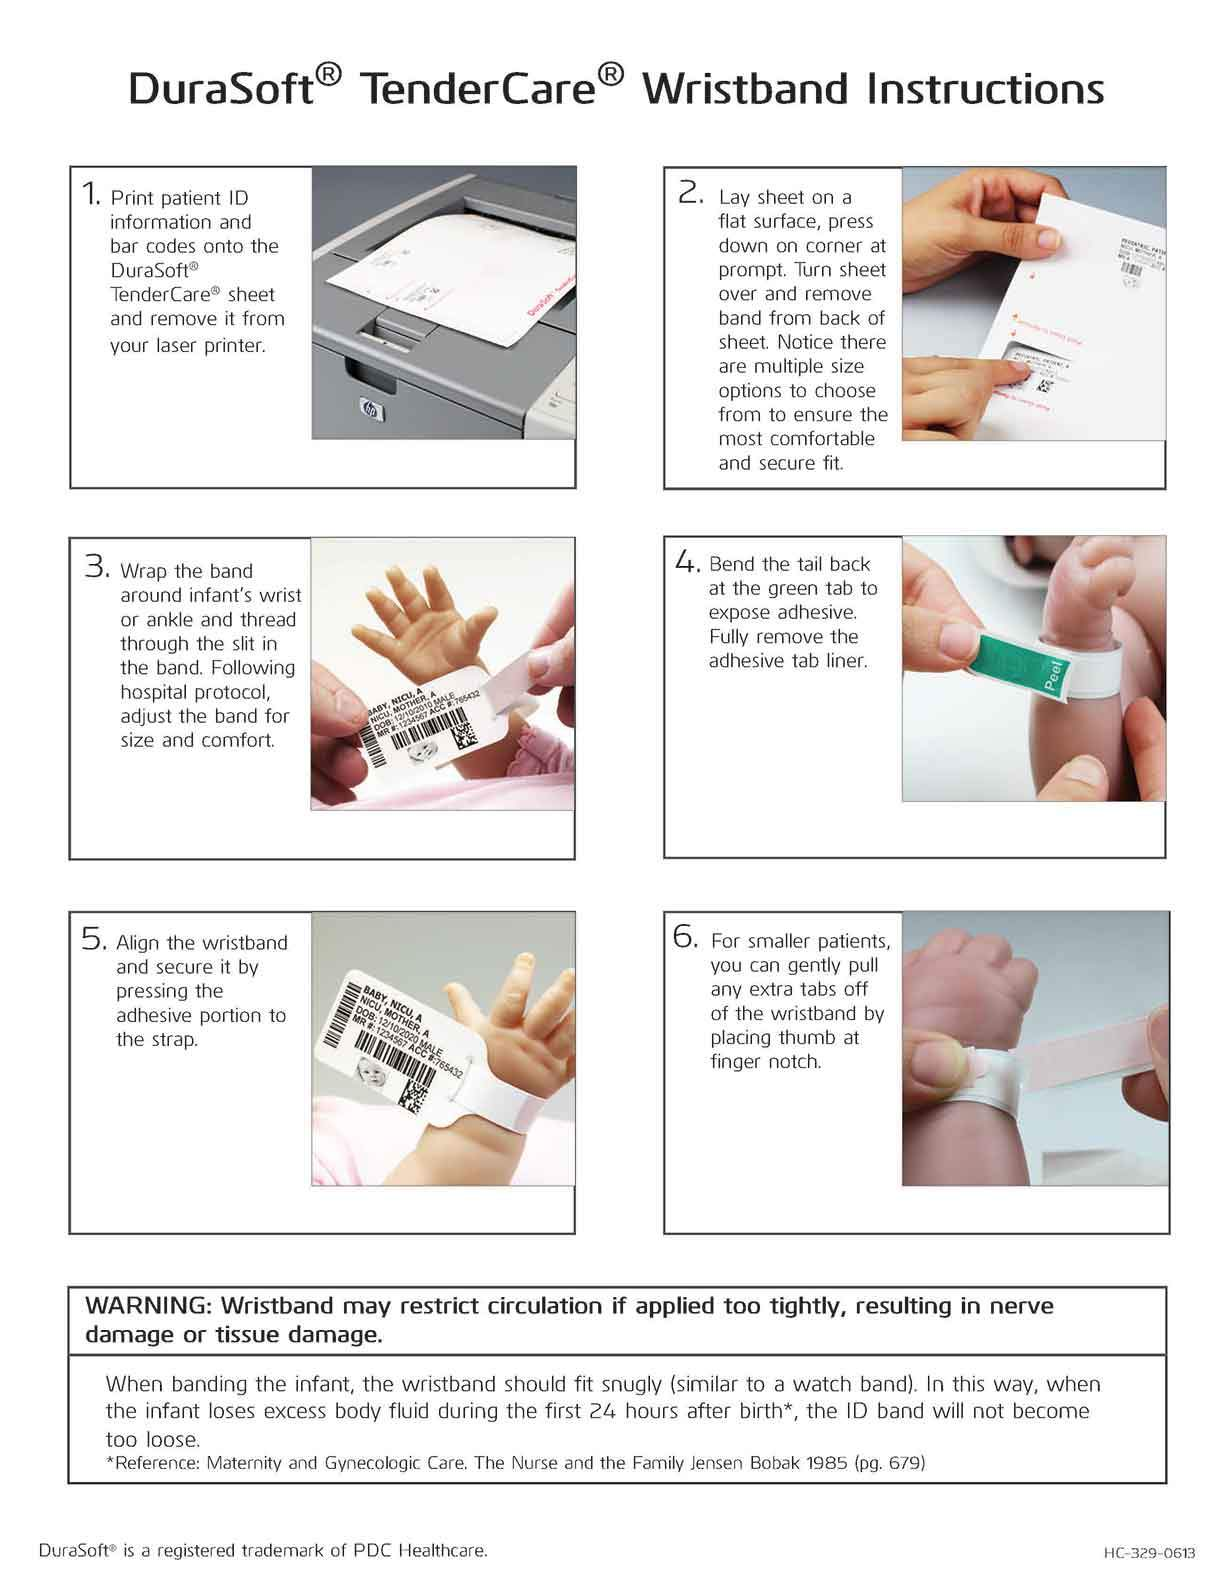 Durasoft® Tendercare® Instruction Sheet